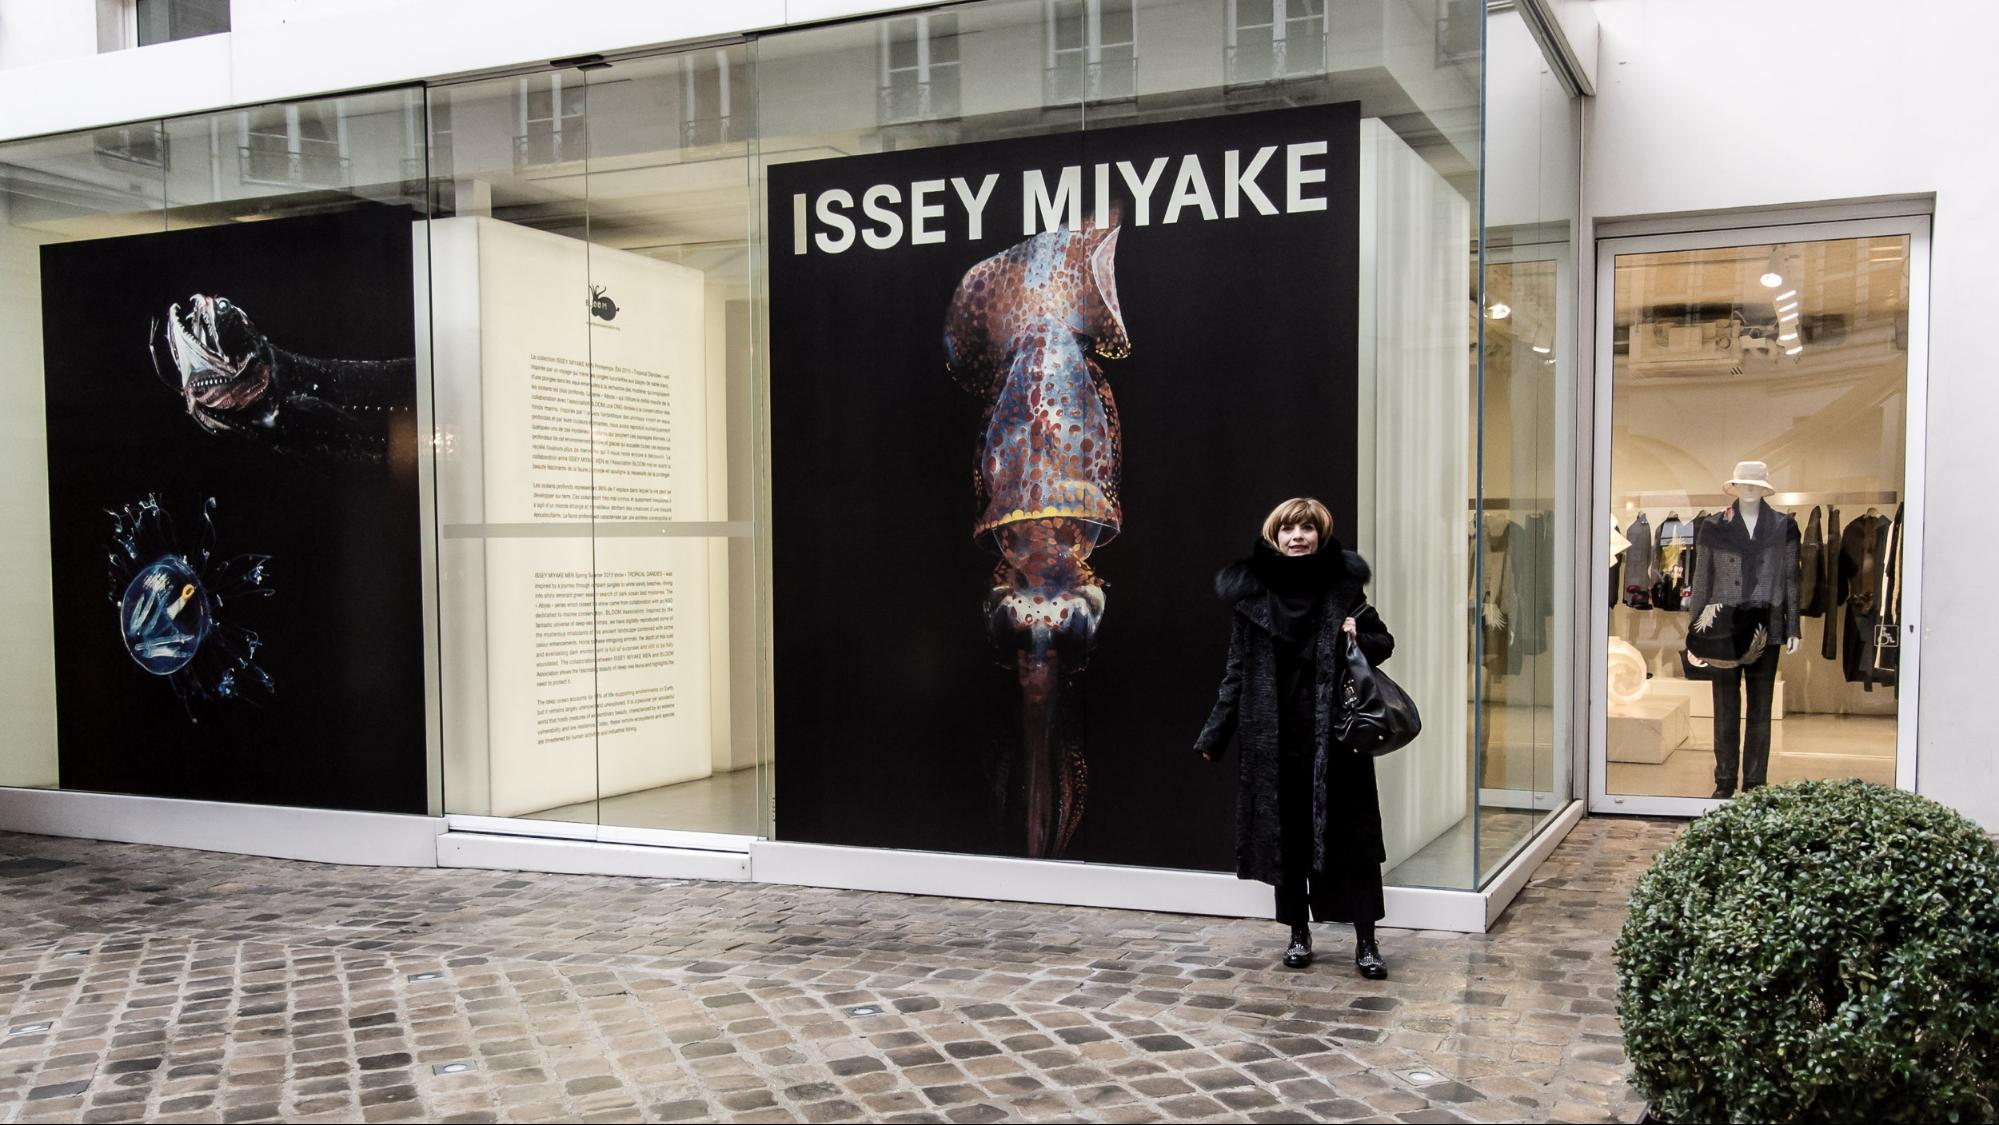 First a bit of info. Issey Miyake was born in 1938 in Hiroshima 43c25957b5e09